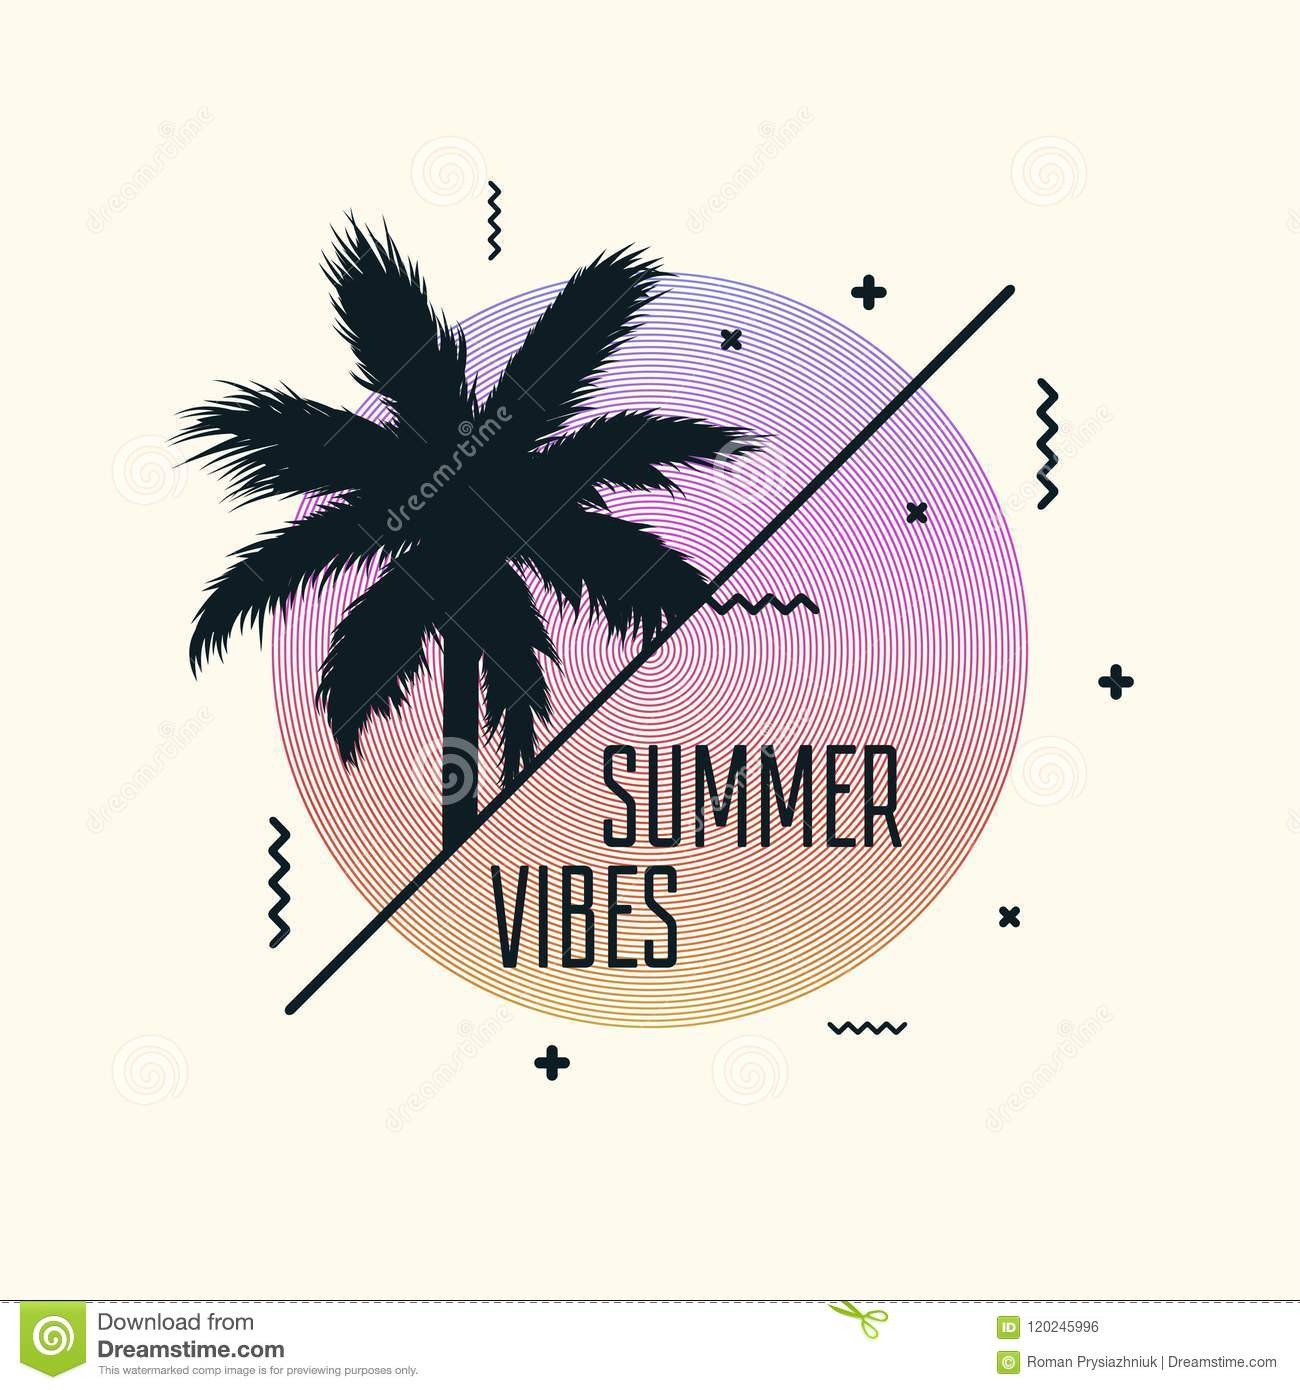 a7cdc009a064 Royalty-Free Vector. Summer vibes poster design with modern graphics and palm  tree. Trendy banner template. Vector